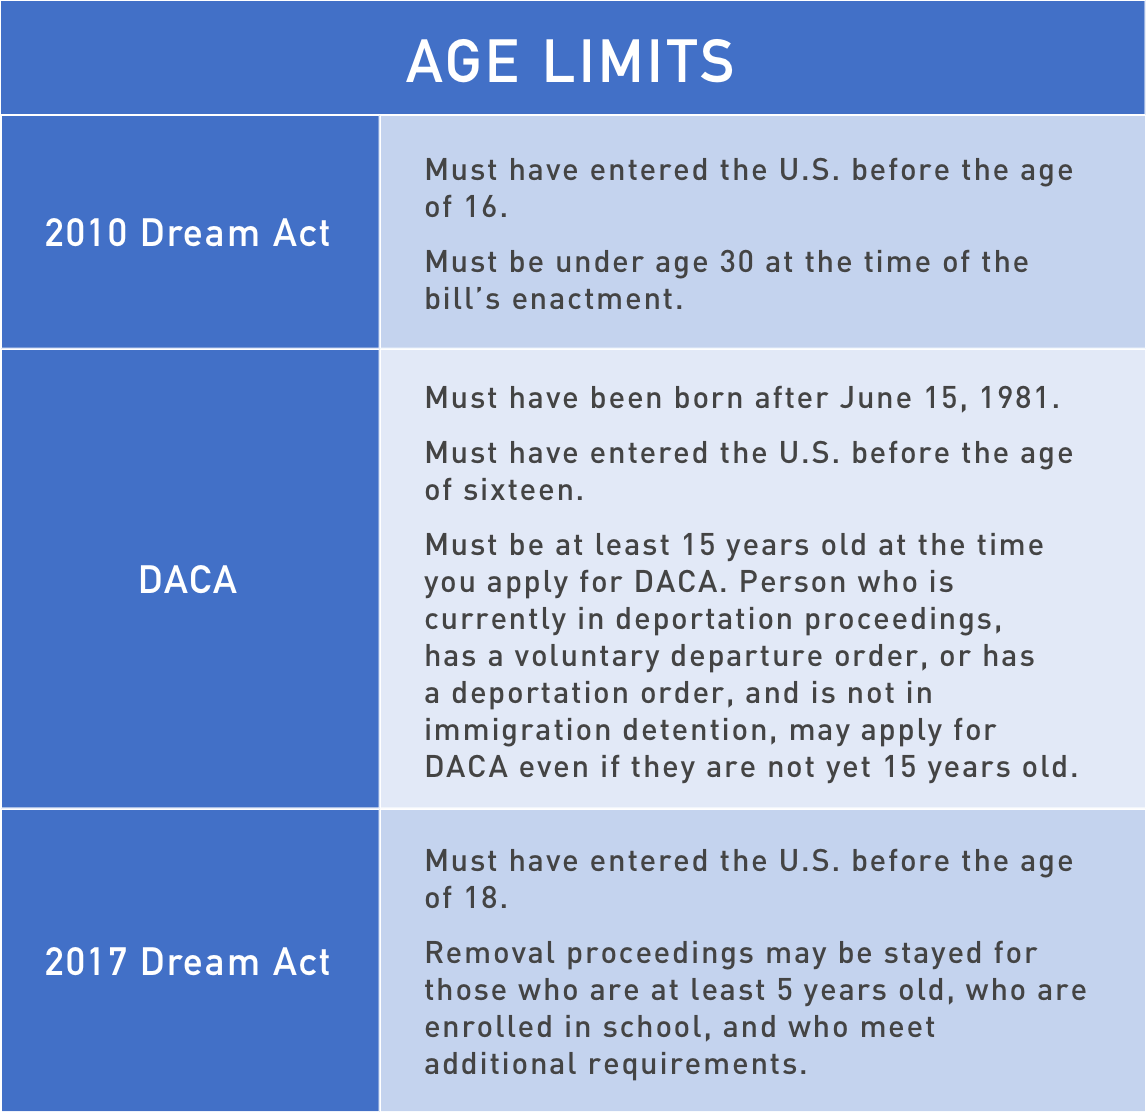 Provisions of 2010 and 2017 Dream Acts and DACA - National